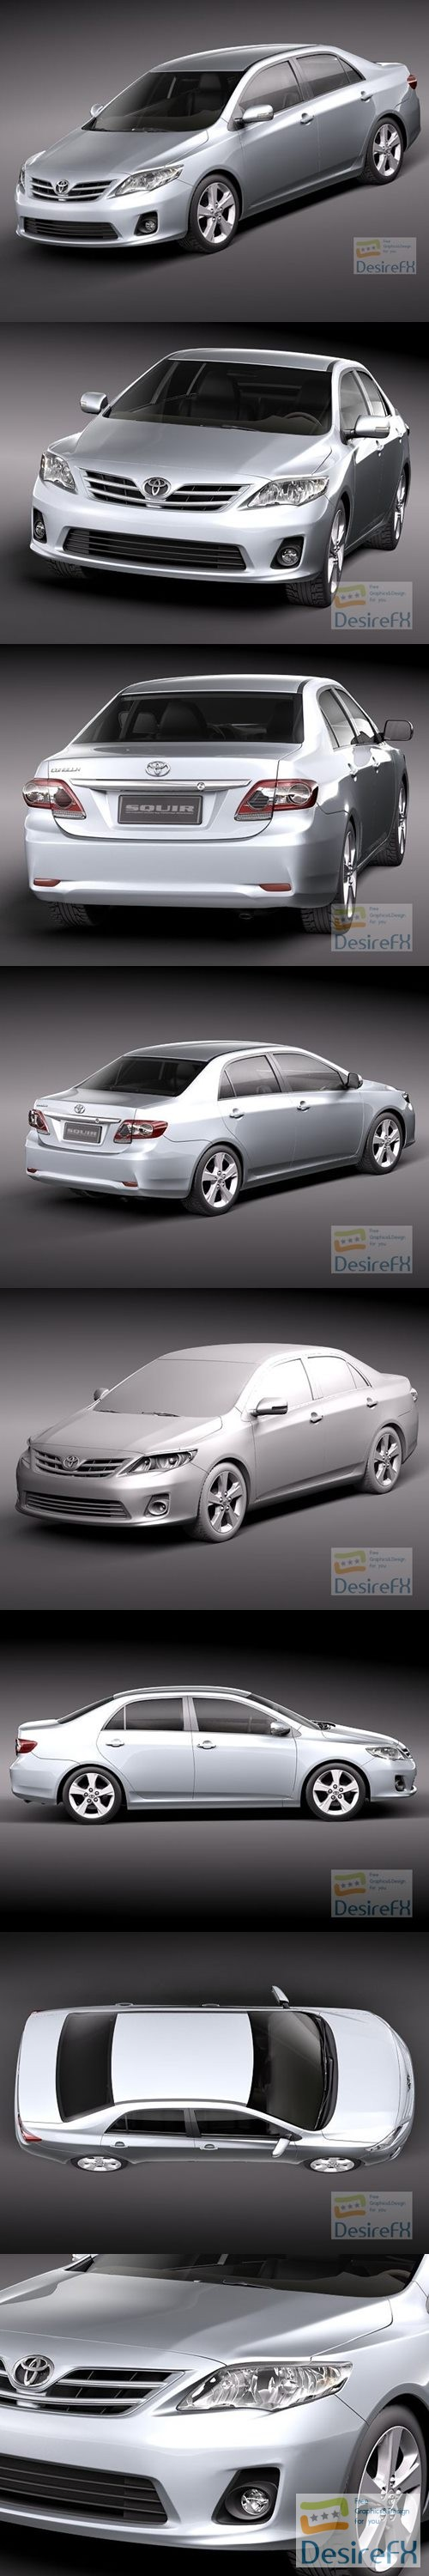 3d-models - Toyota Corolla 2010 Sedan 3D Model